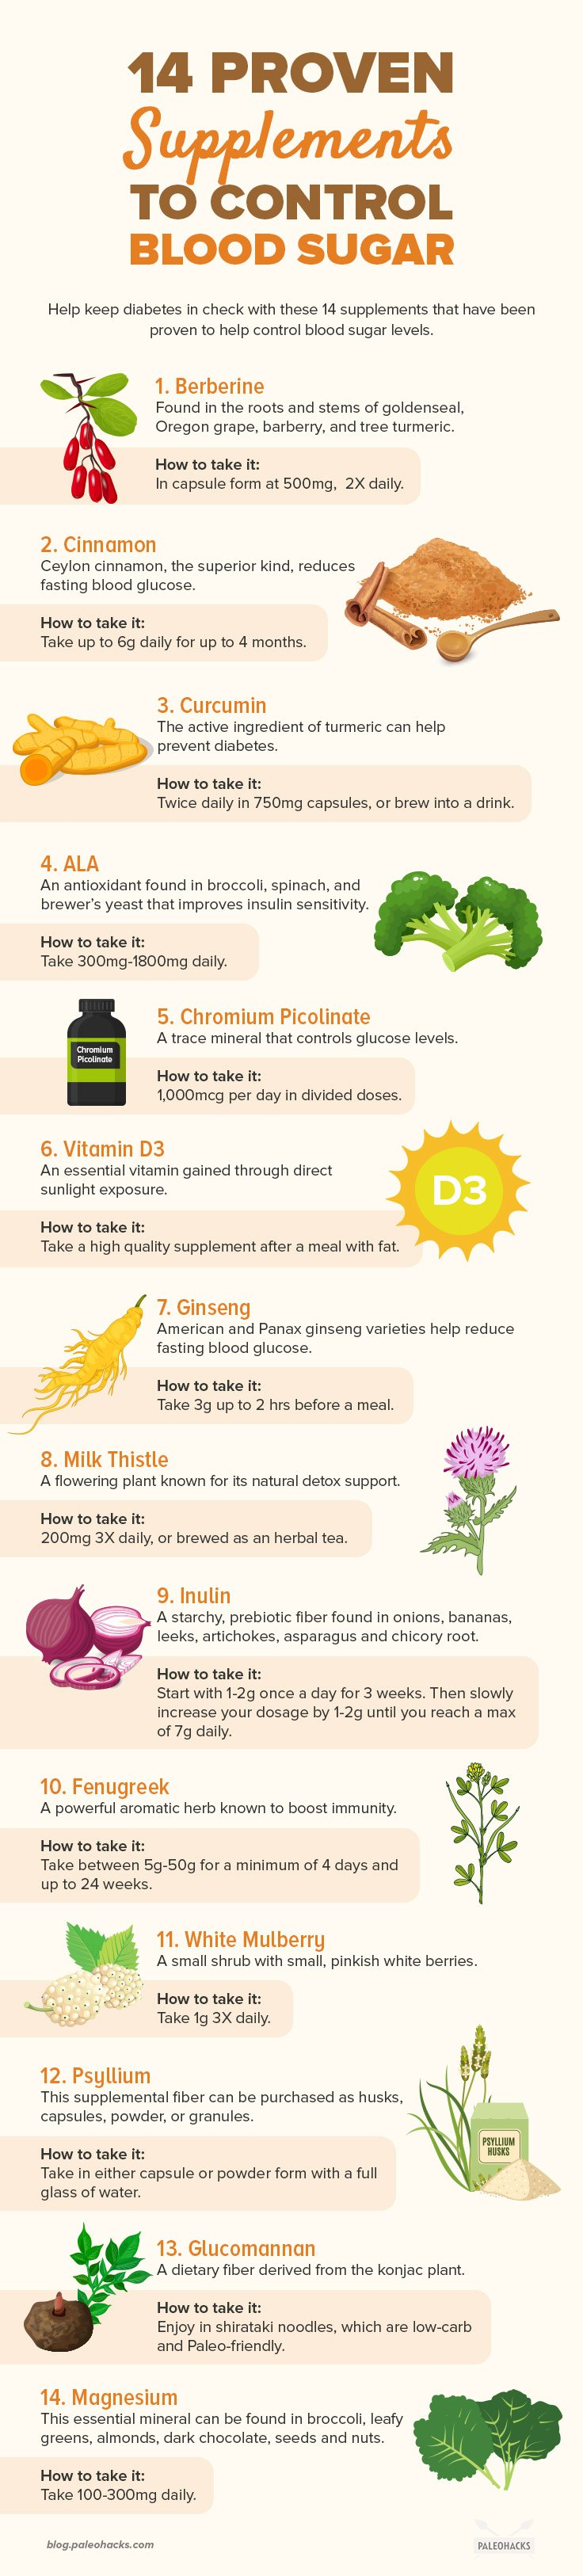 14-Proven-Supplements-to-Control-Blood-Sugar-infog.jpg